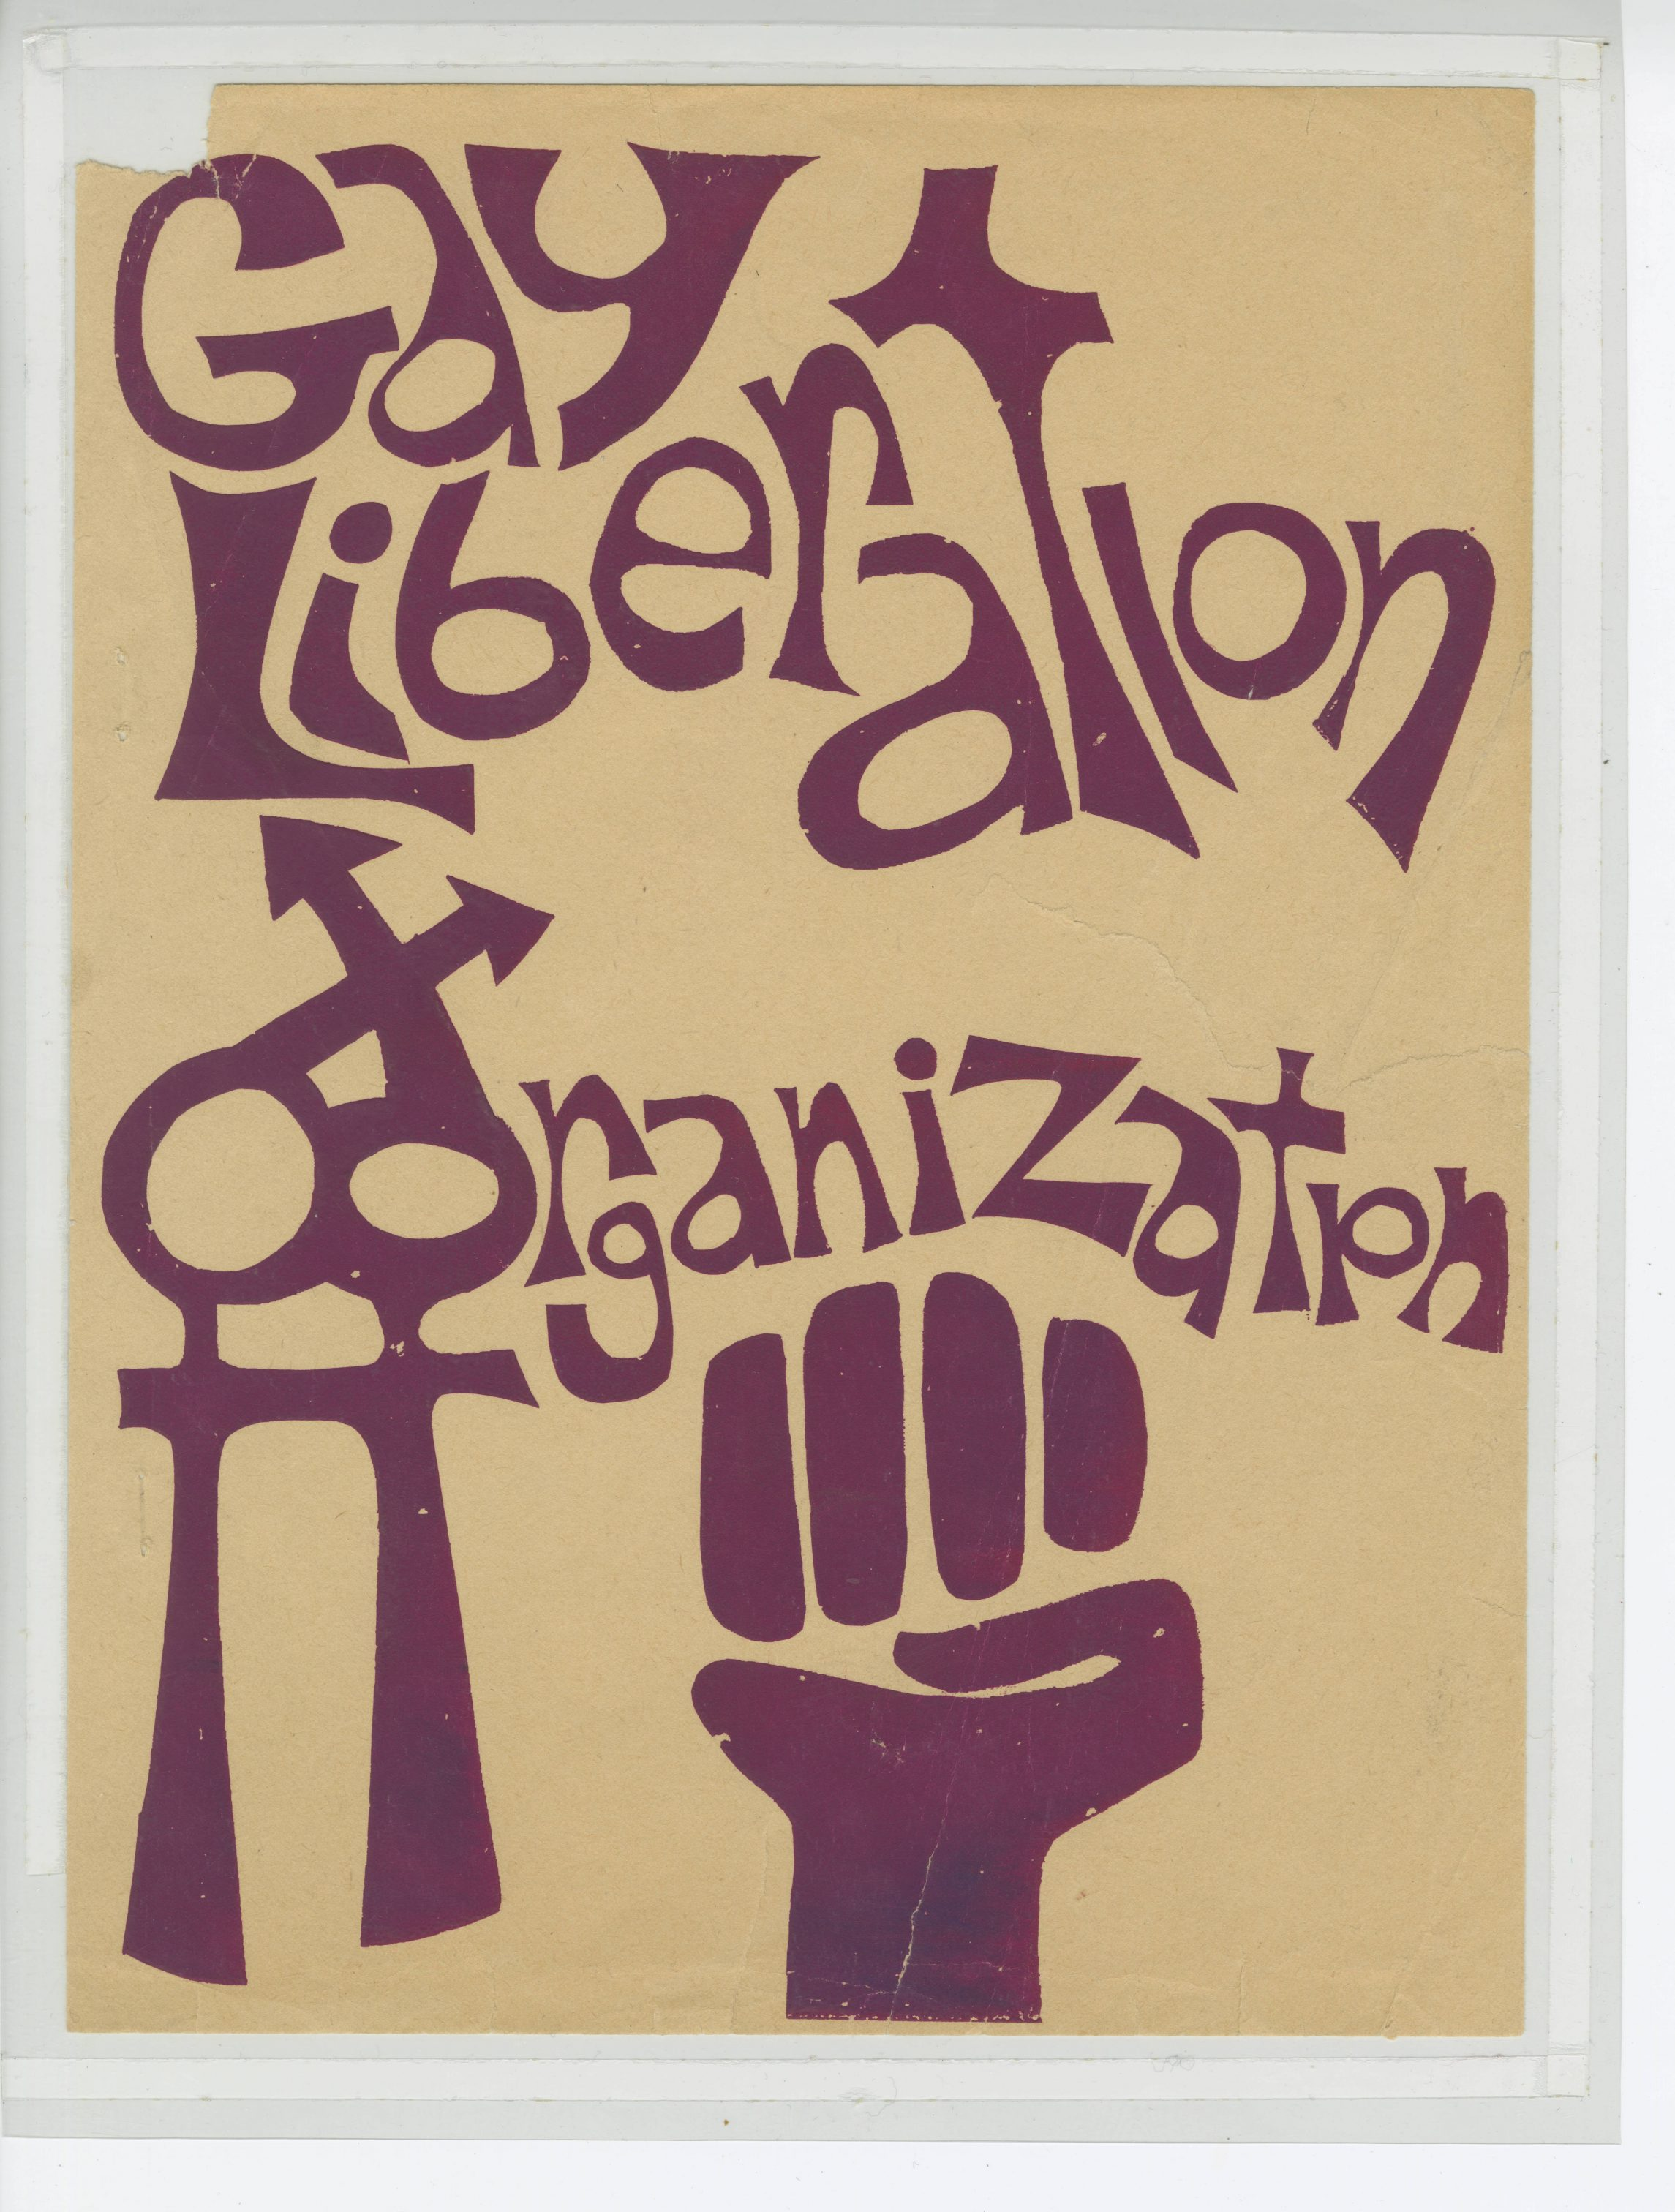 In 1970, the Gay Liberation Organization (GLO) was founded at the University of Wisconsin-Milwaukee as an early effort to organize gay men and women in the area.